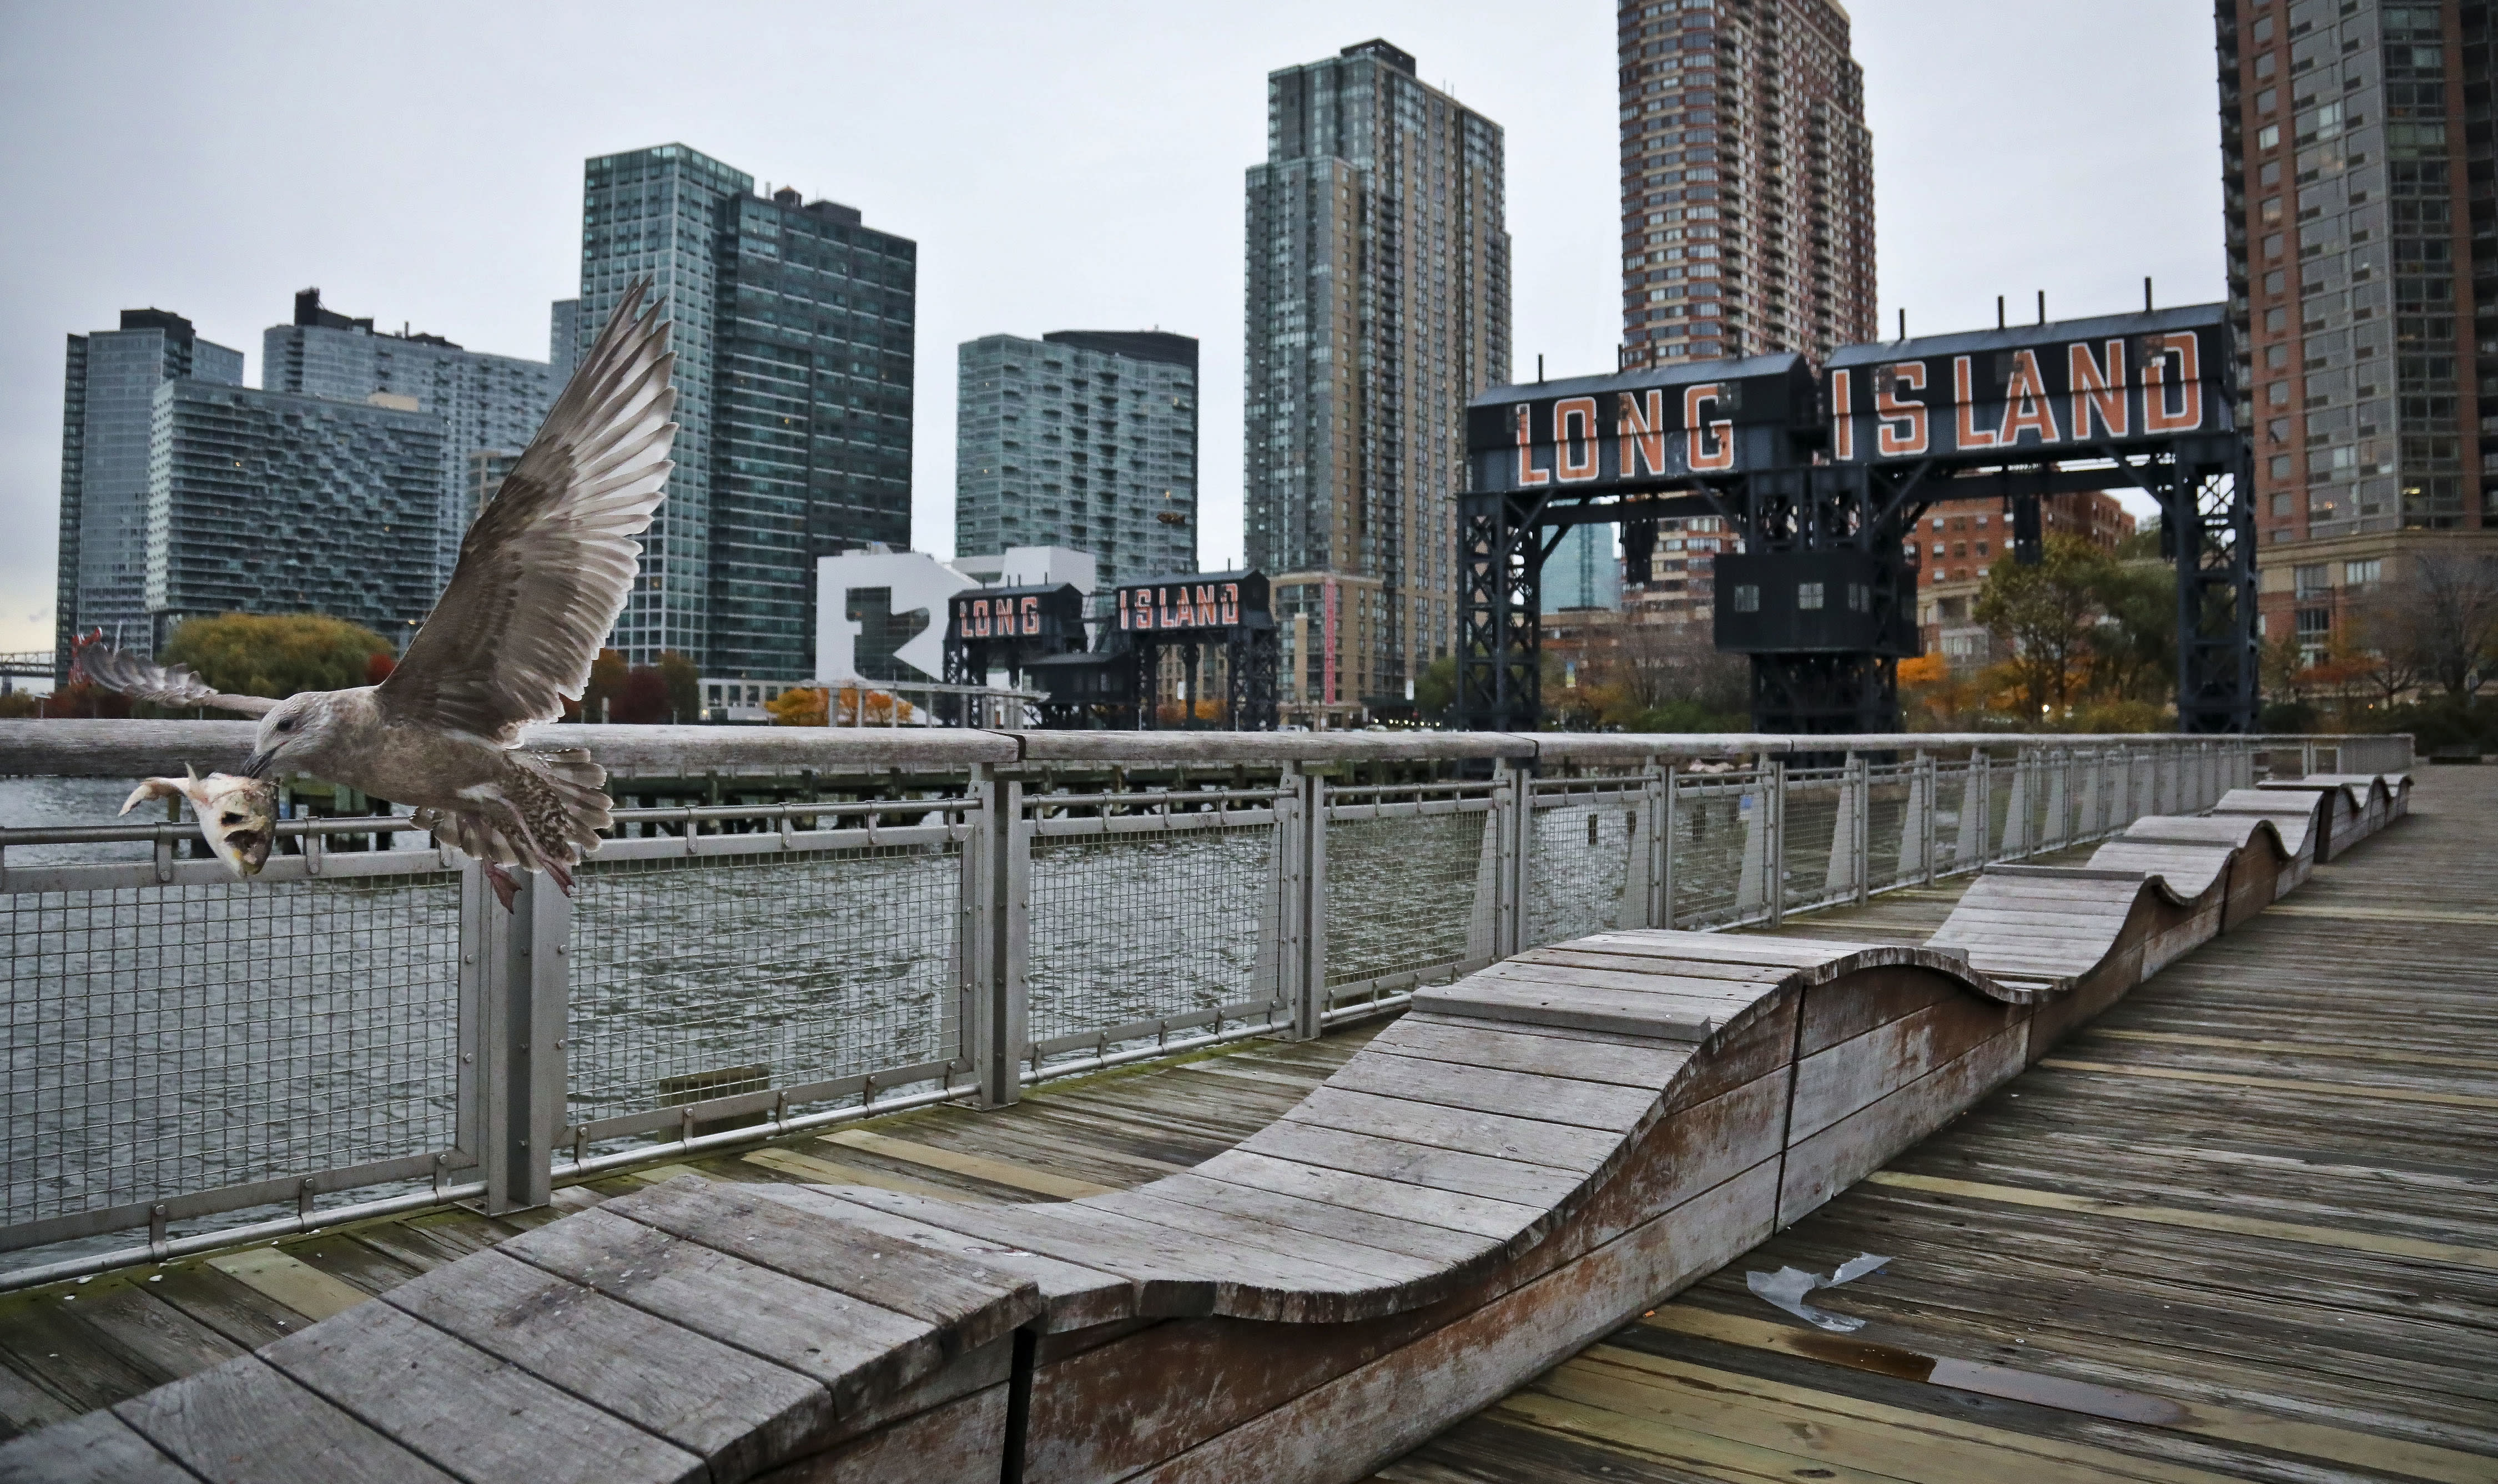 """FILE - In this Nov. 13, 2018, file photo, a sea gull flies off holding fish scraps near a former dock facility, with """"Long Island"""" painted on old transfer bridges at Gantry State Park in the Long Island City section of the Queens Borough in New York. Amazon said Thursday, Feb. 14, 2019, that it will not be building a new headquarters in New York, a stunning reversal after a yearlong search. (AP Photo/Bebeto Matthews, File)"""